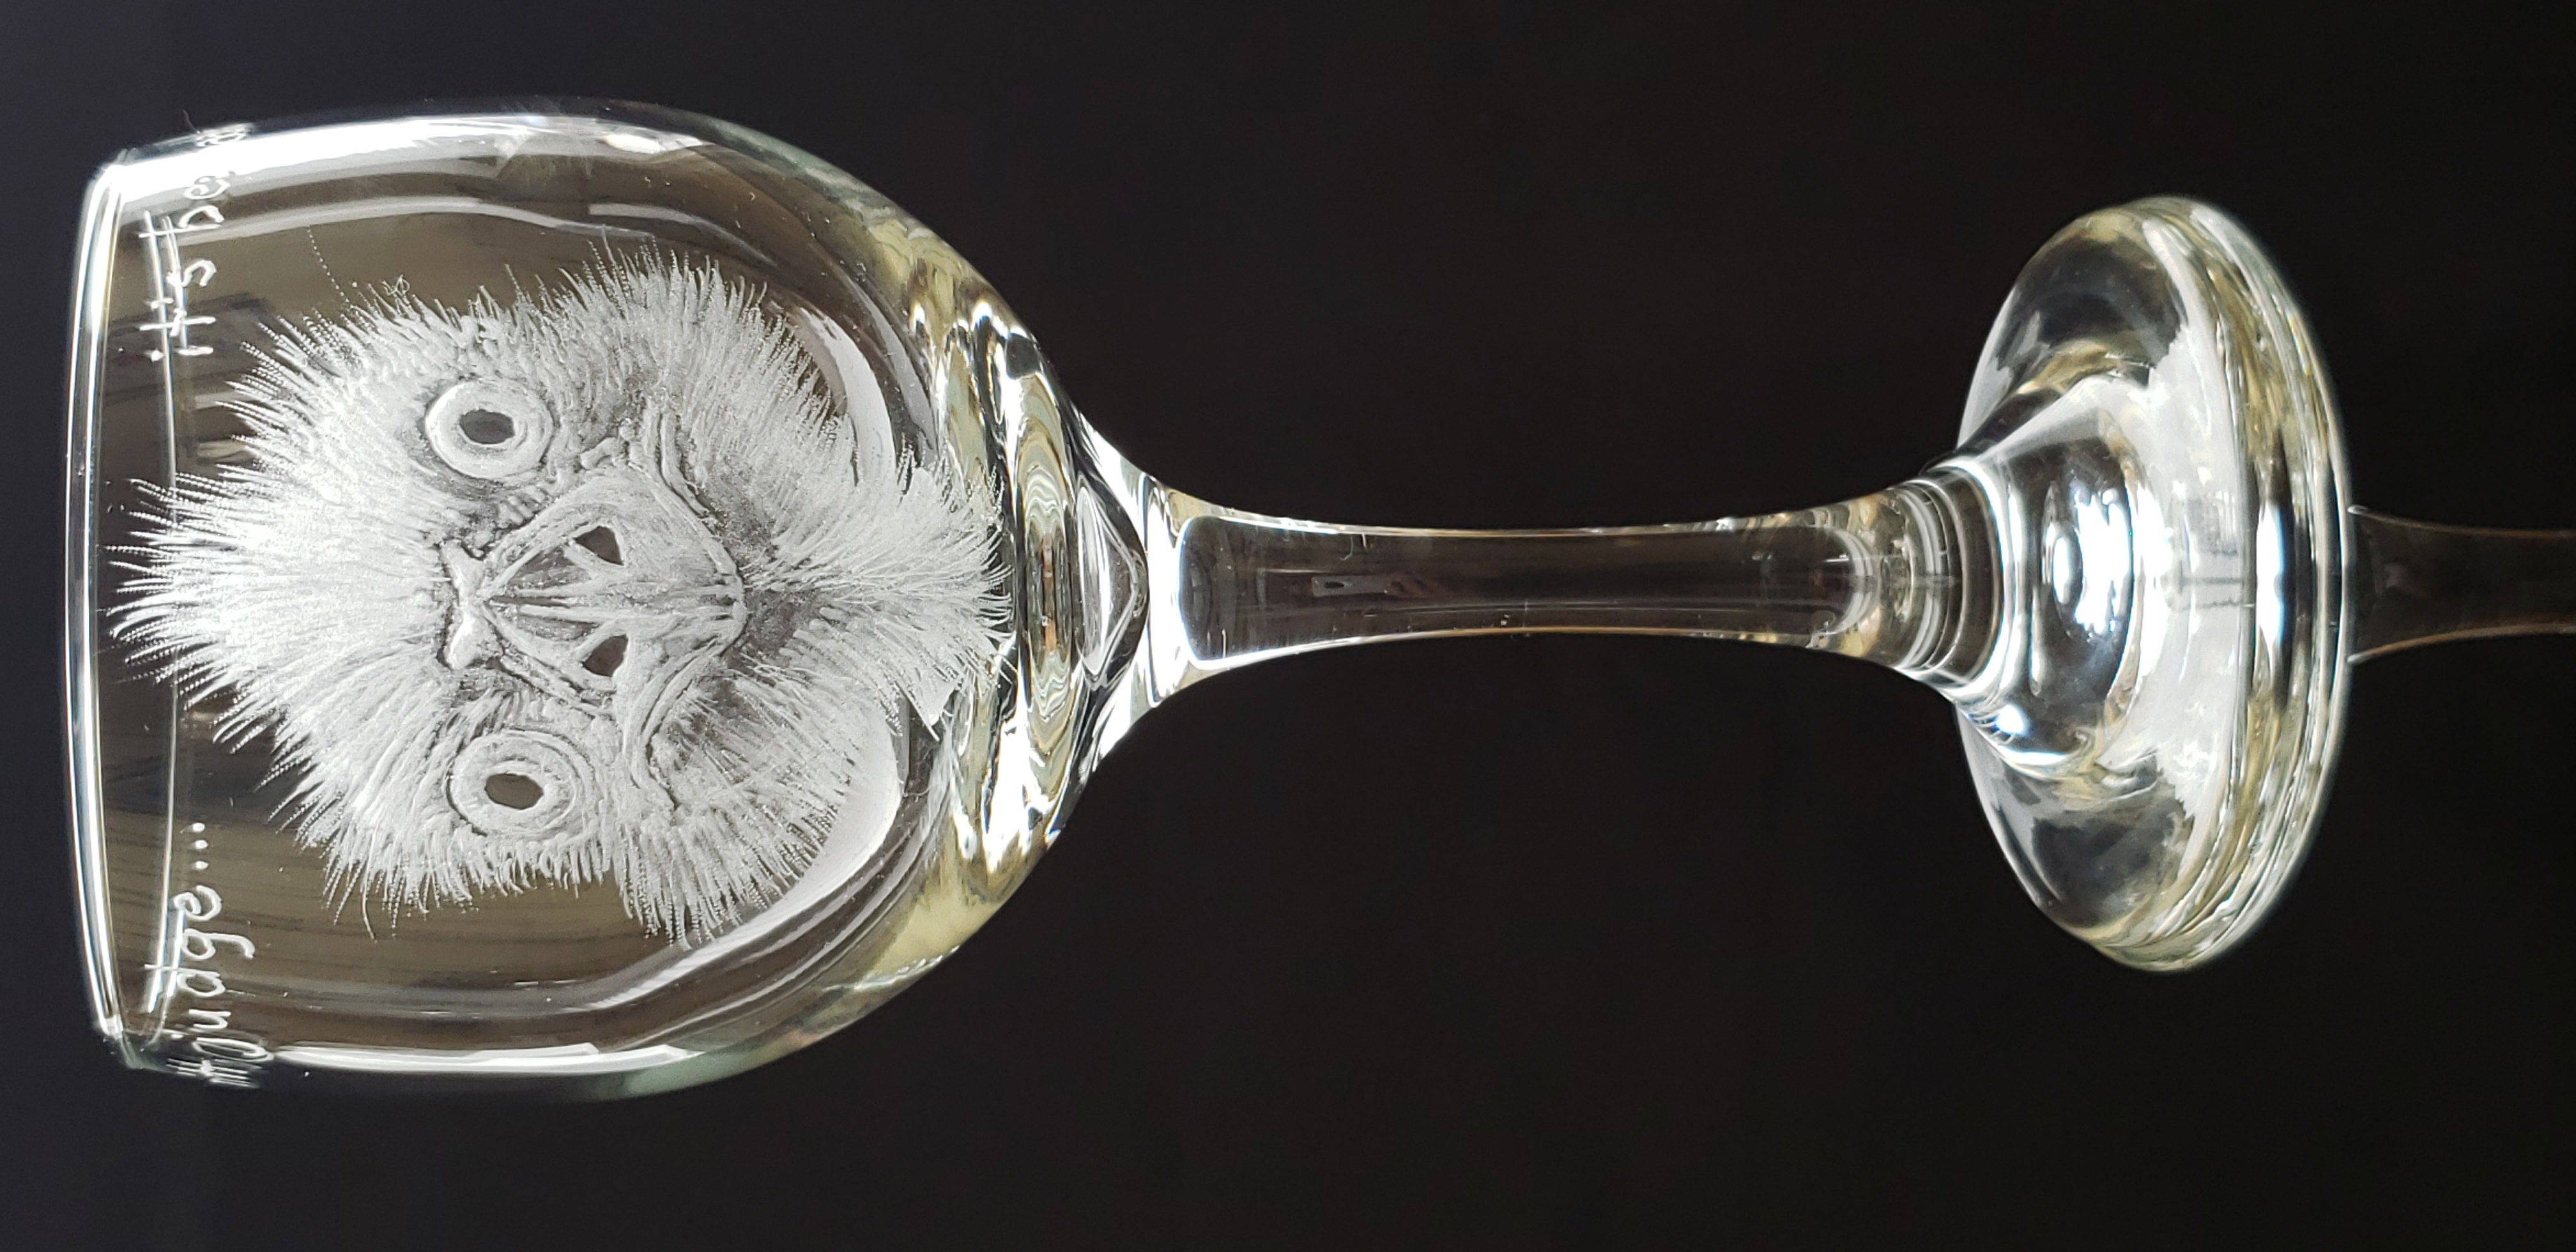 ostrich wine glass